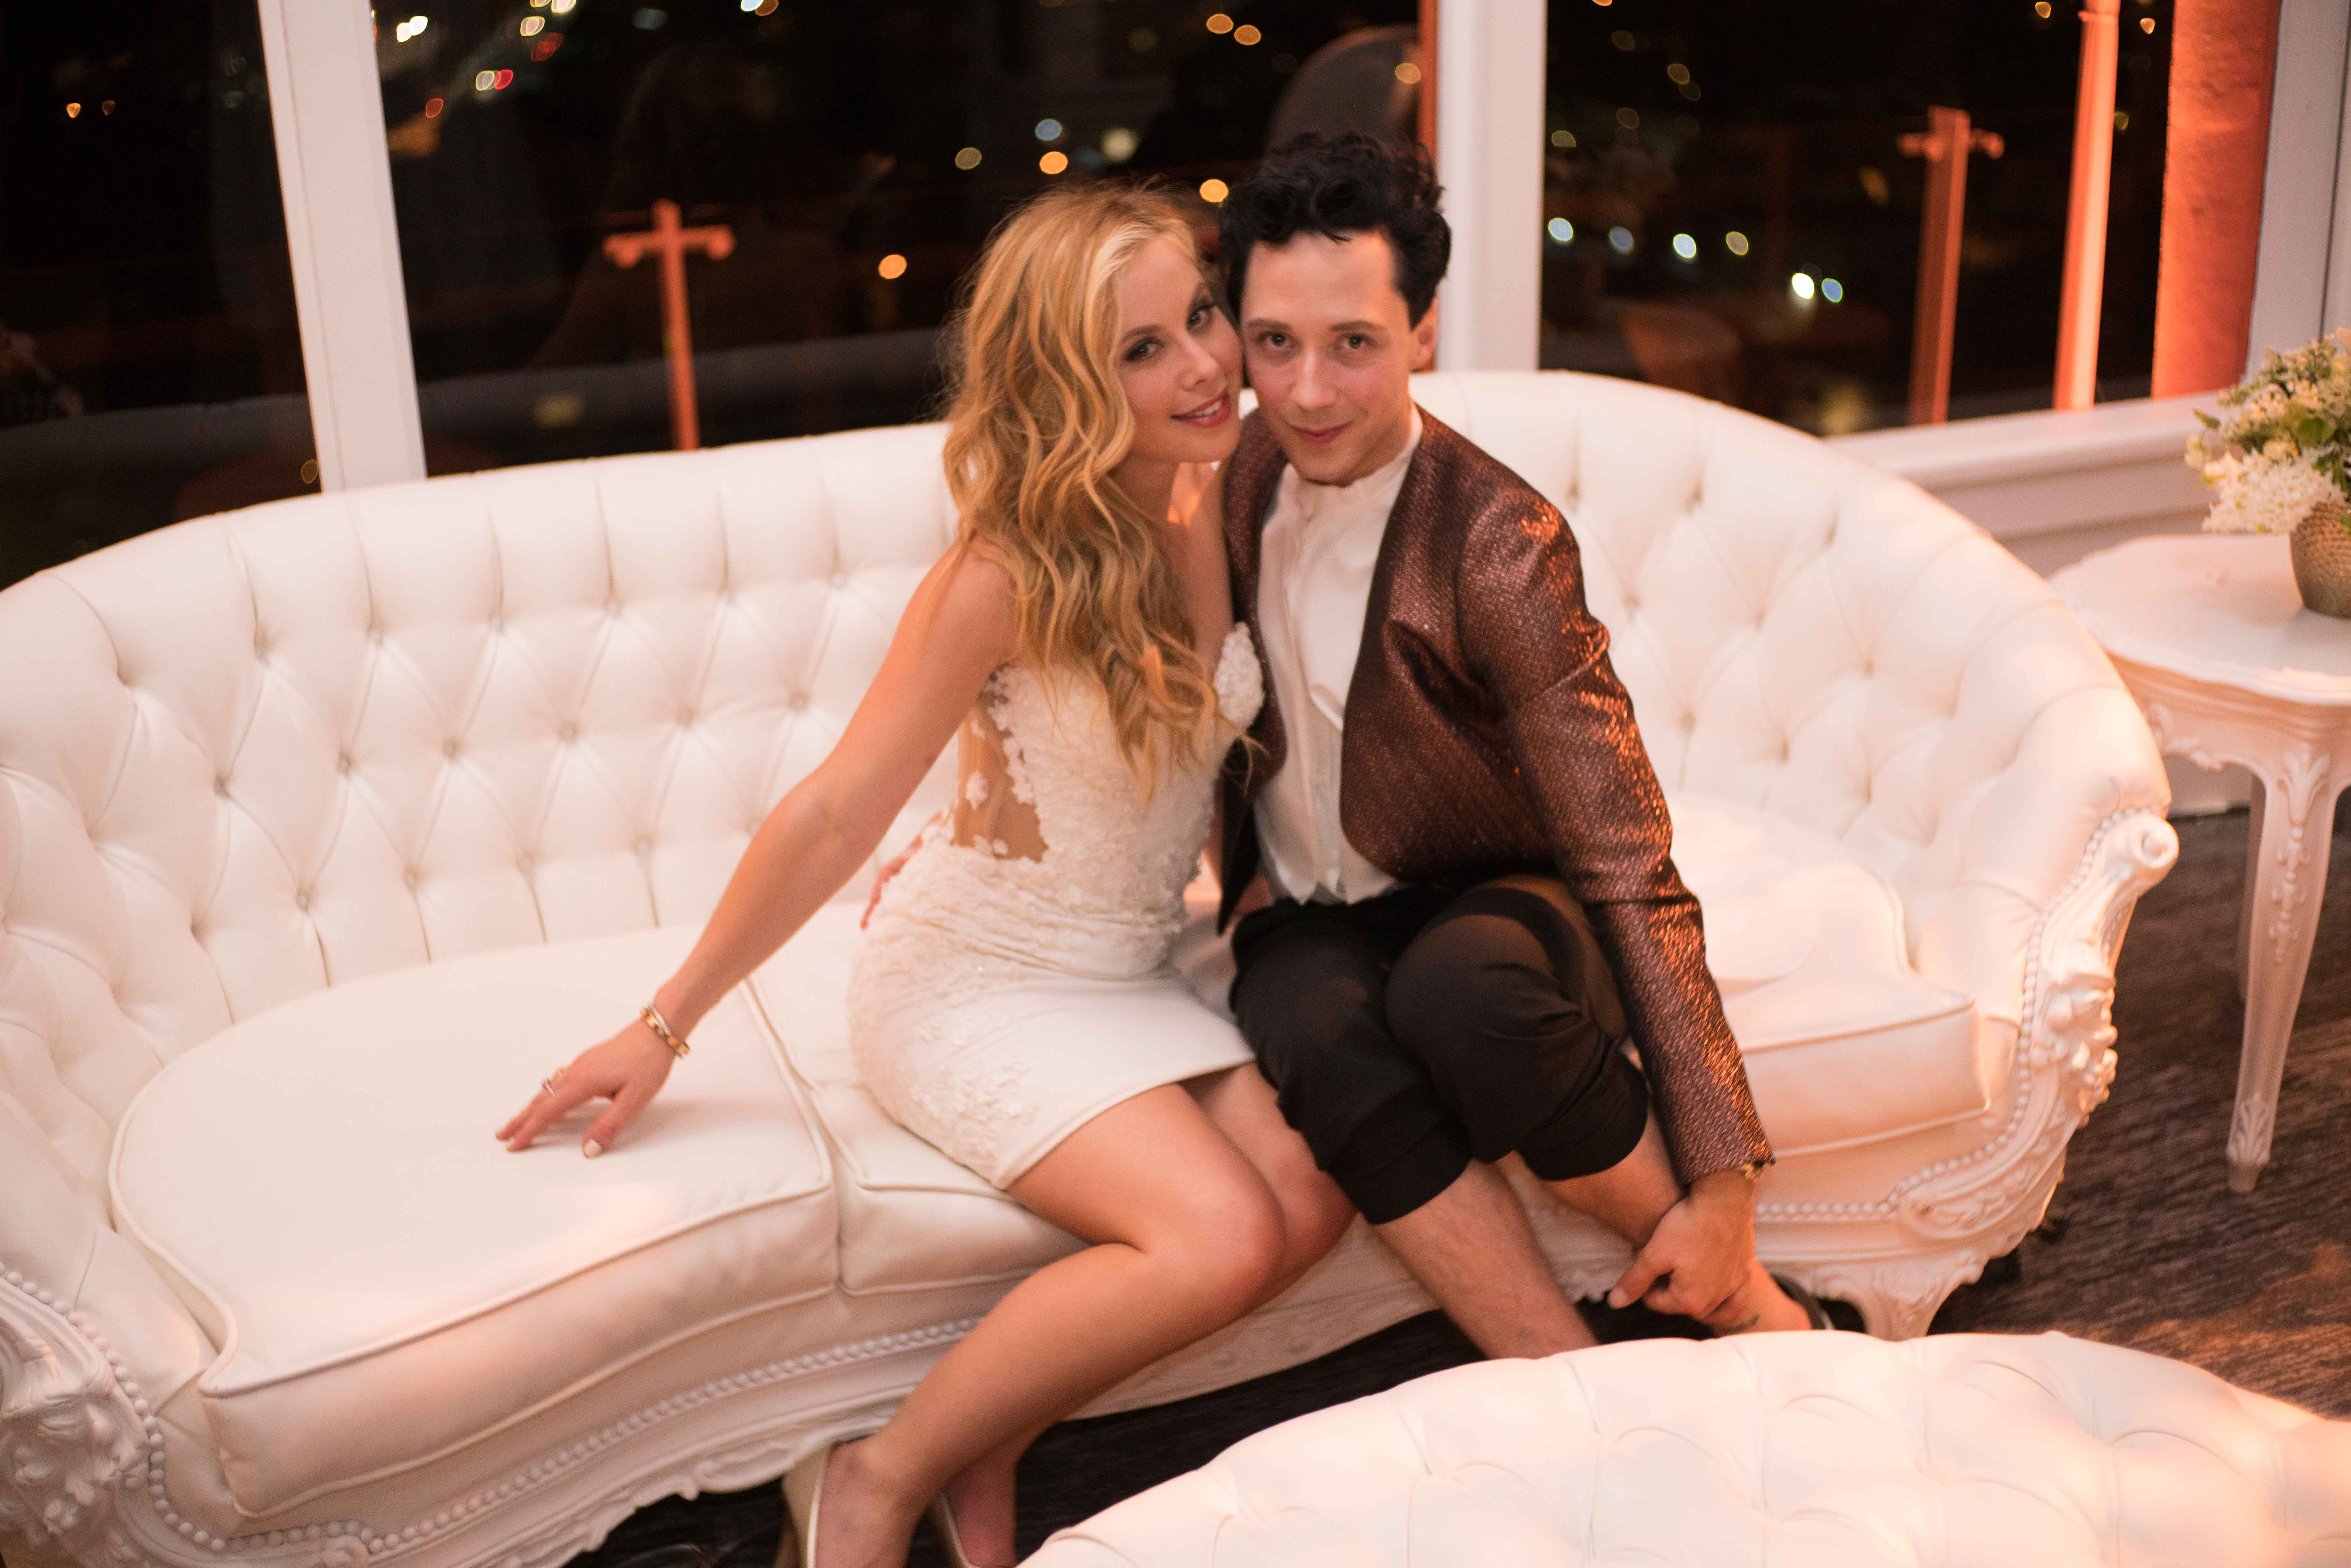 Olympic gold medalist Tara Lipinski's engagement party space Johnny Weir Mr C Beverly Hills May 2016 fiance Todd Kapostasy Mindy Weiss wedding planner